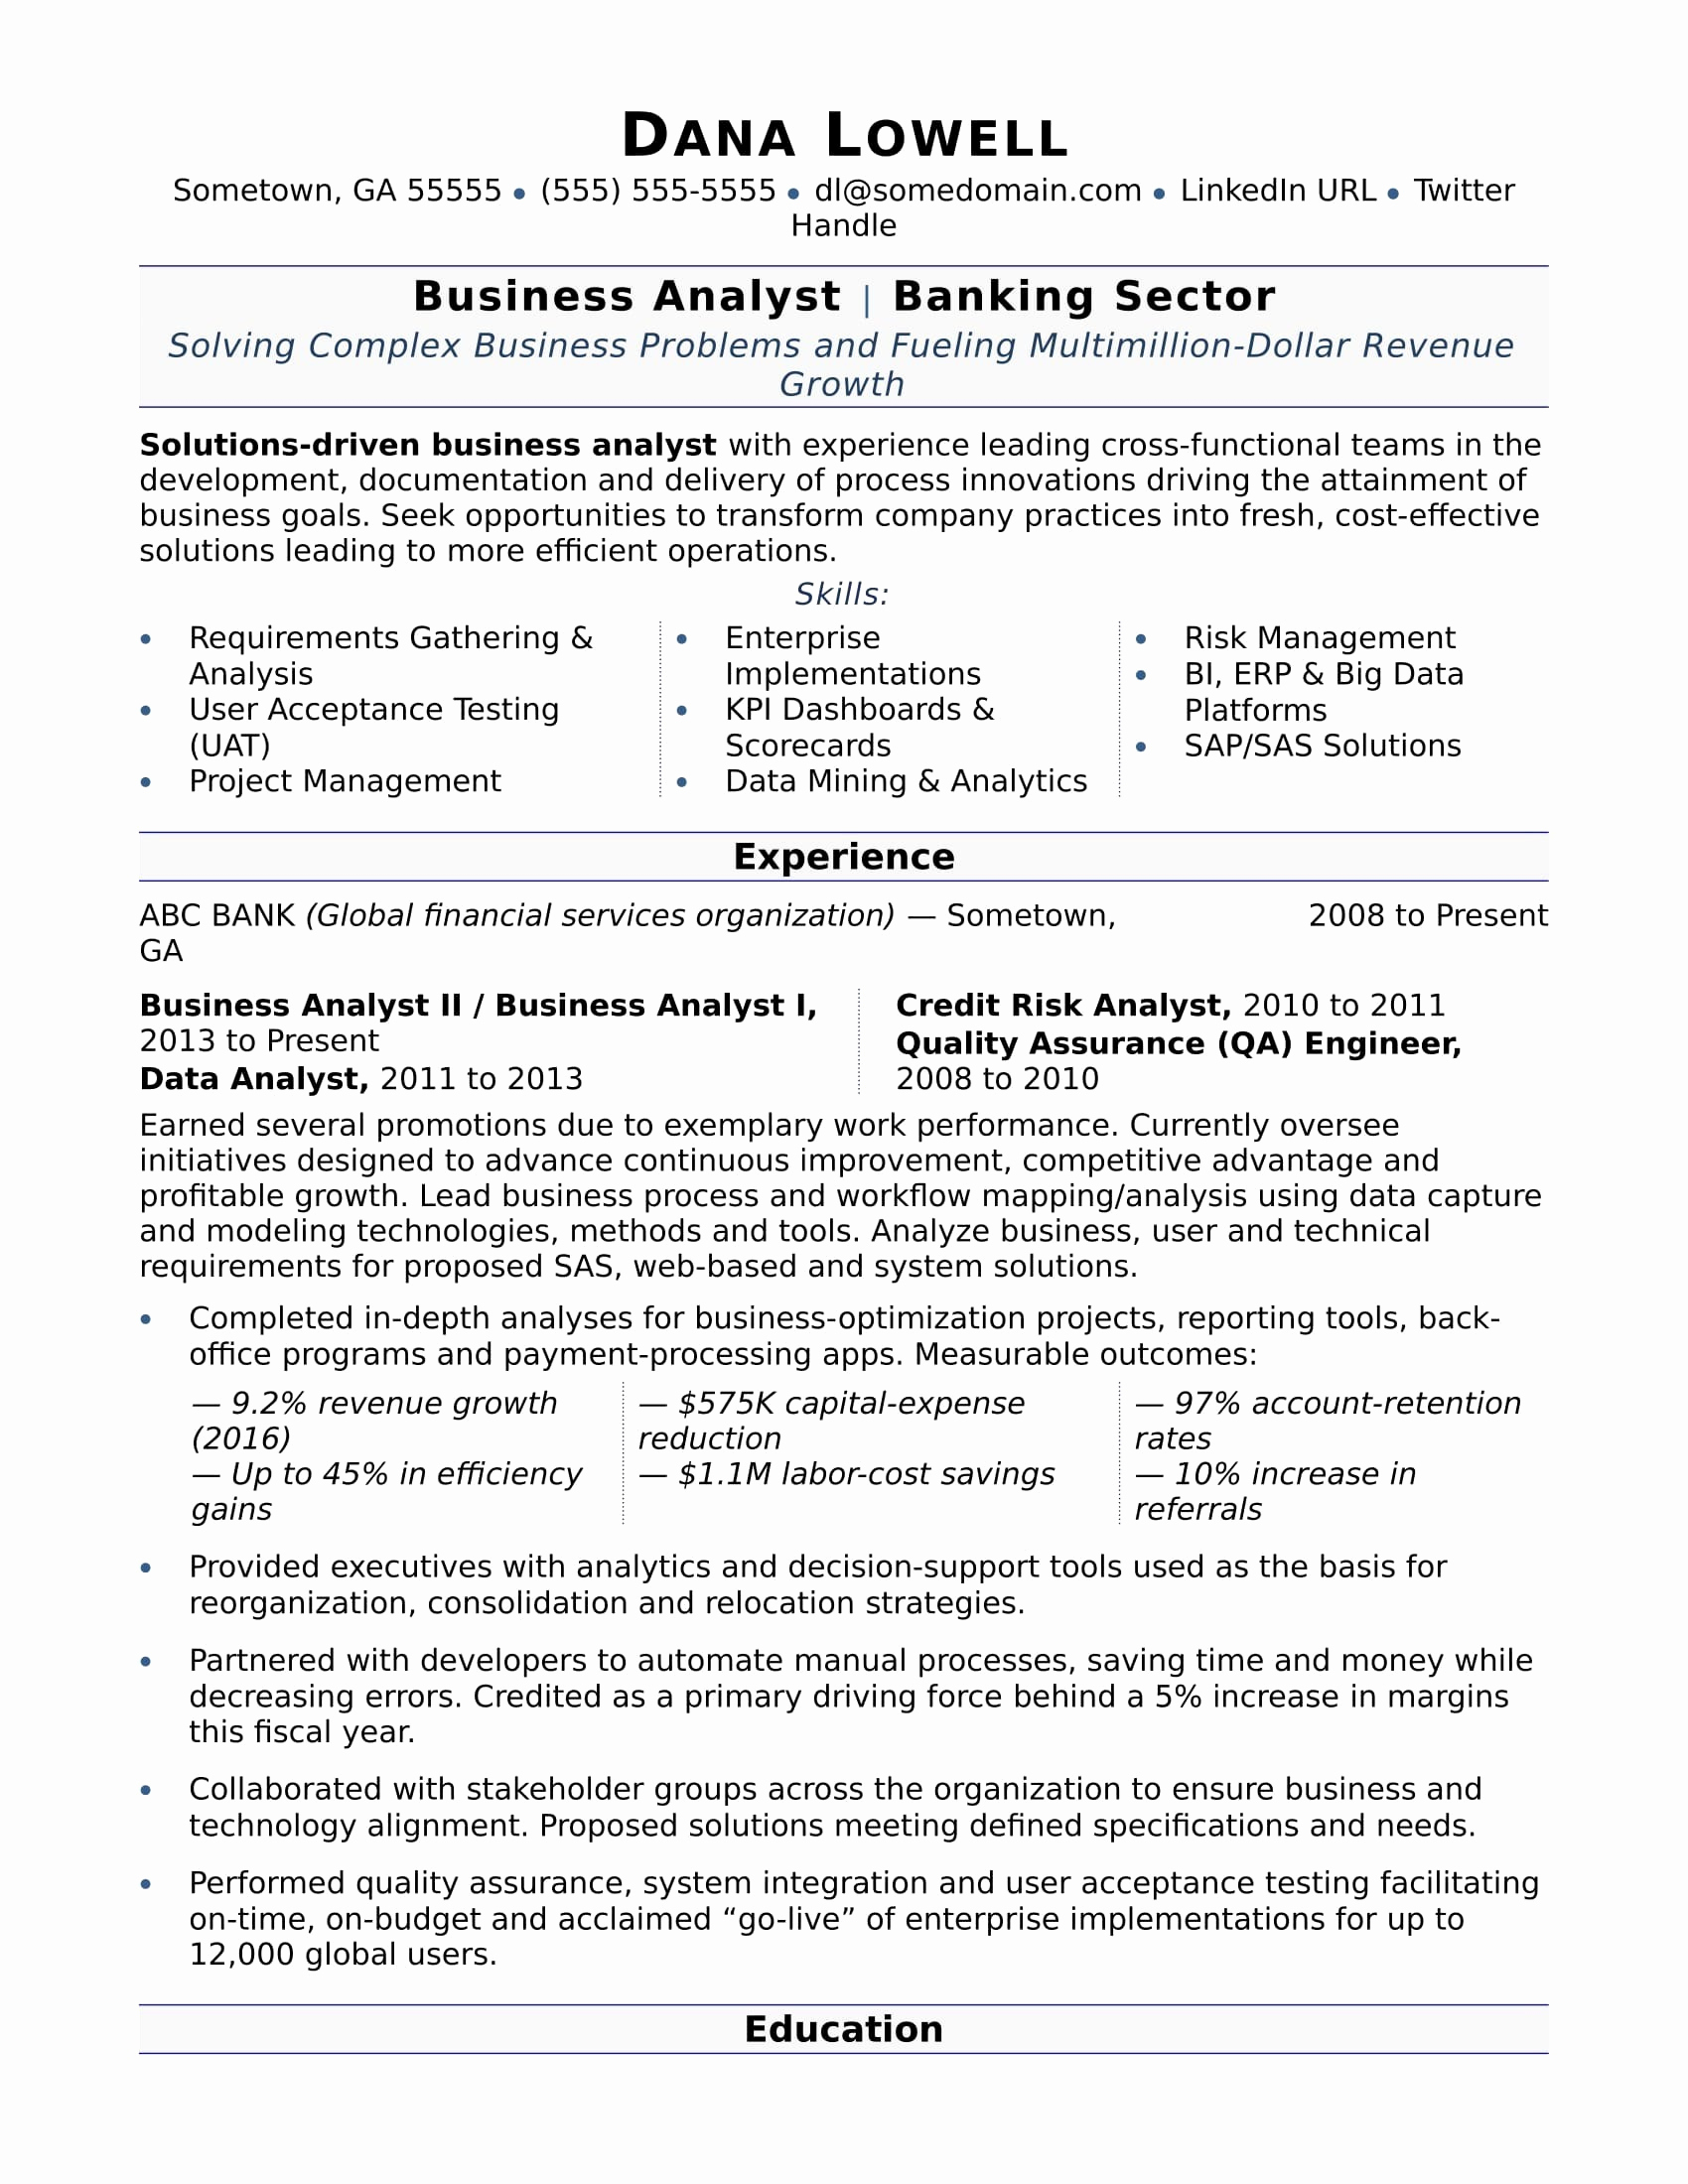 Resume Keyword Search - Keyword Einzigartig Finance Resume Keywords Design New Translator